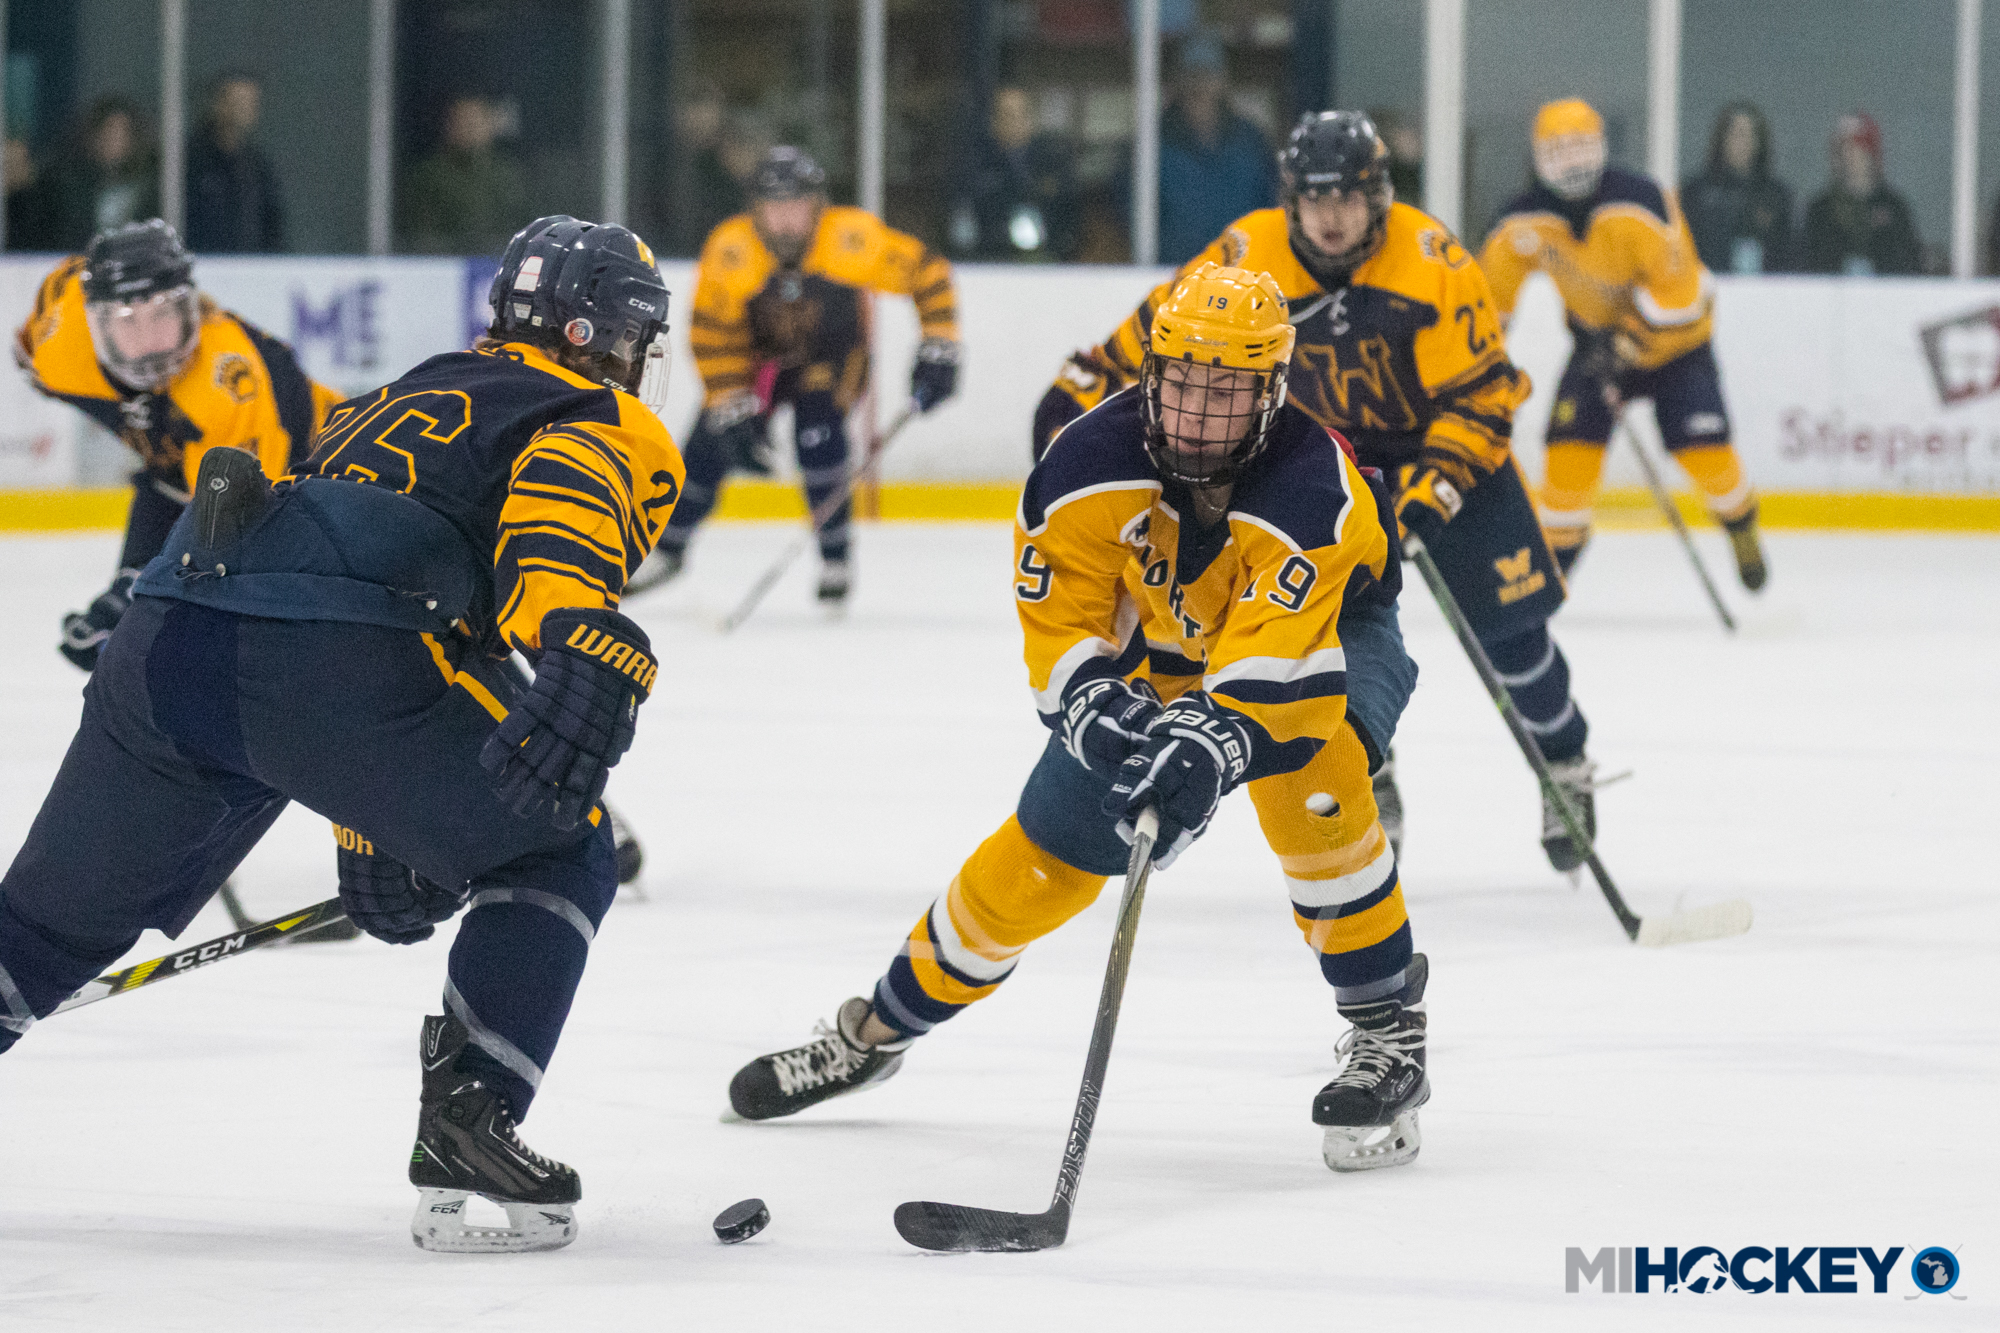 2018 MIHL Prep Hockey Showcase schedule announced